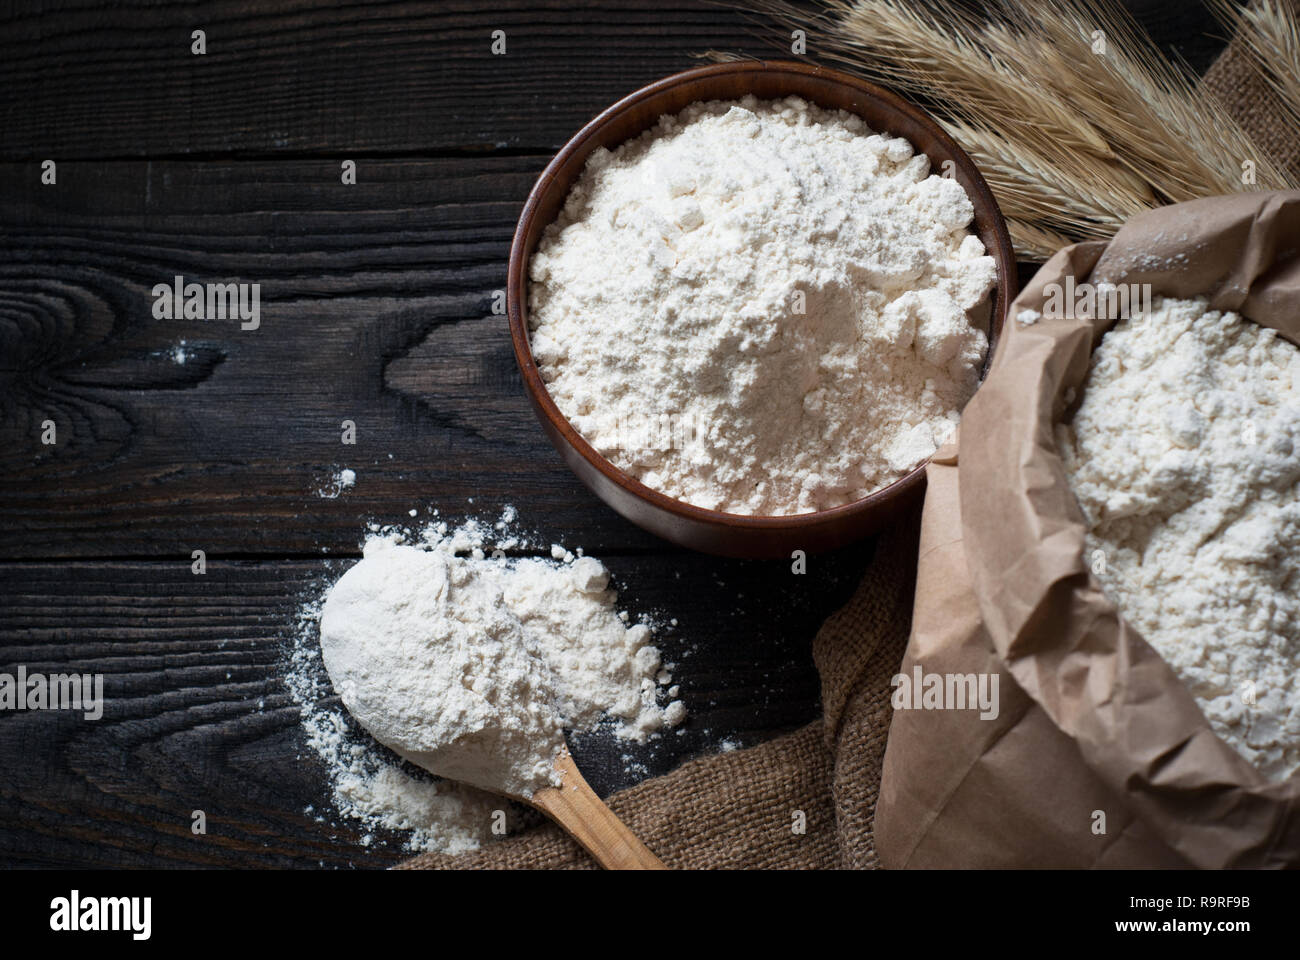 Flour in a wooden bowl, paper bag and spoon. Top view, space for text. - Stock Image